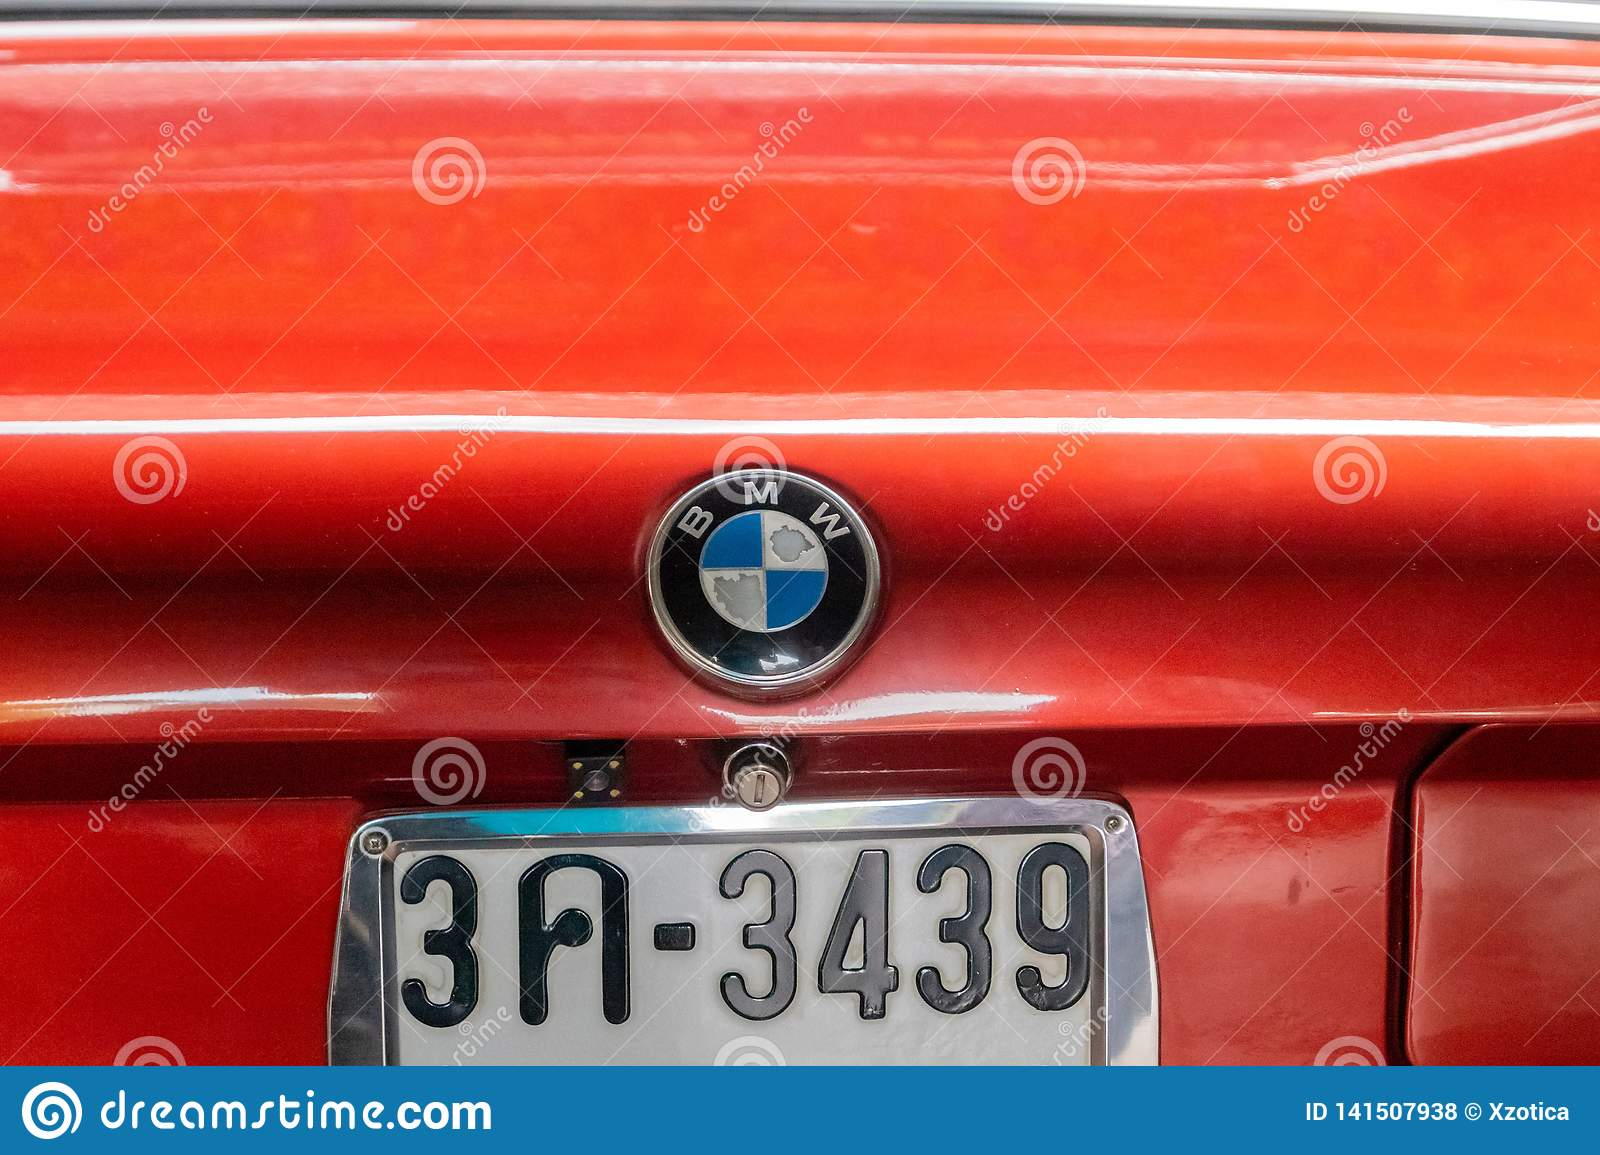 Old Bmw Logo With Old License Plate Of Old Red Bmw 7 Series Parked In Garage In Bangok Thailand February 10 2019 Editorial Stock Photo Image Of Company Show 141507938